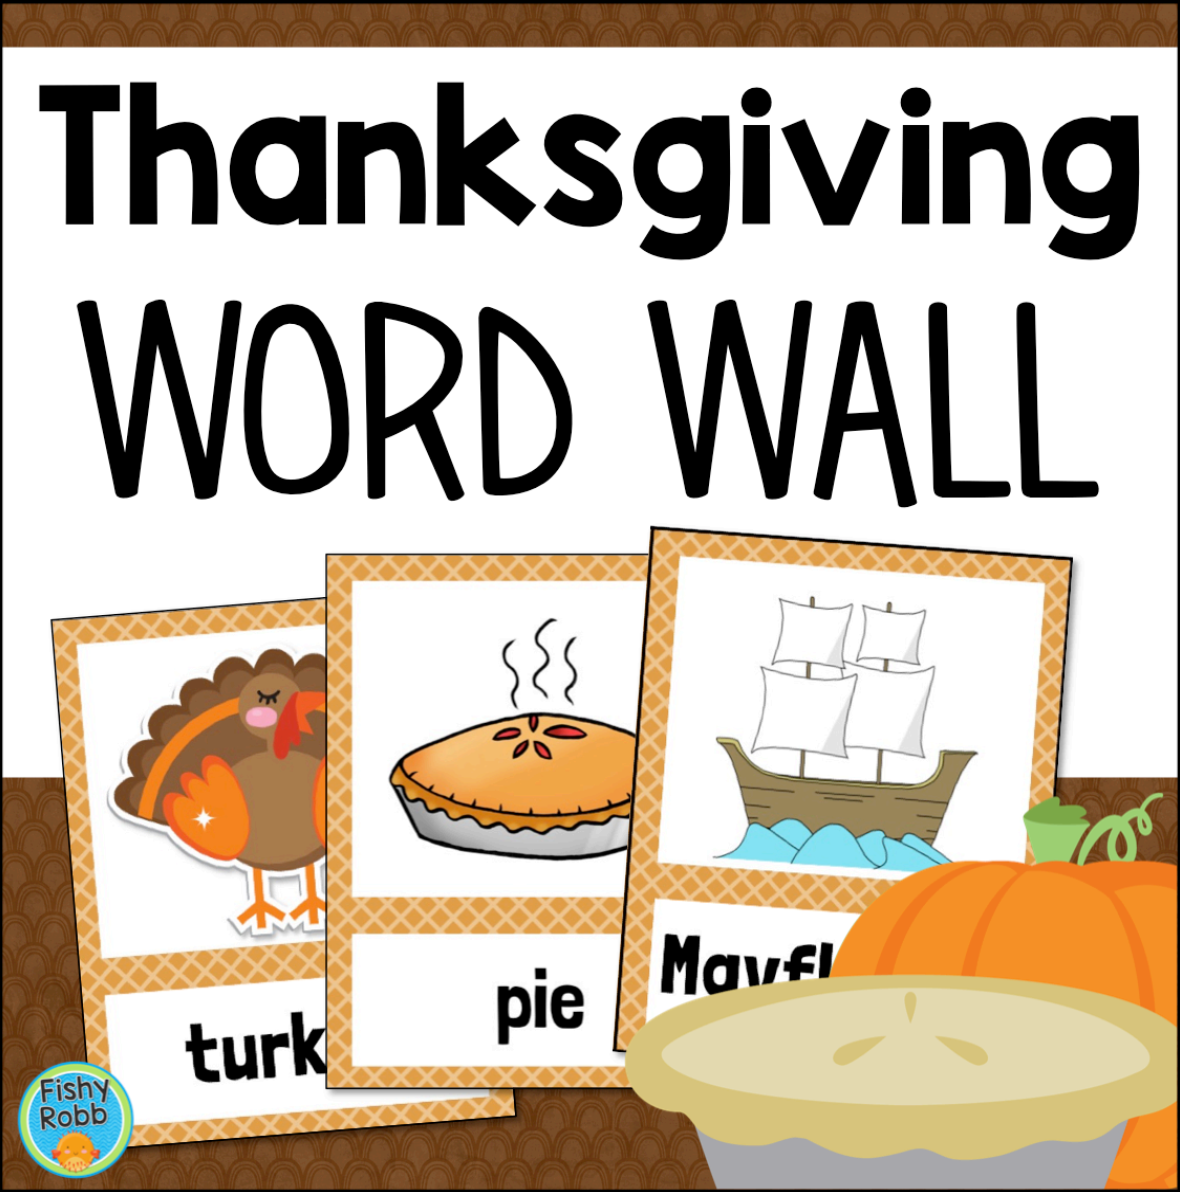 Thanksgiving Word Wall Vocabulary Cards